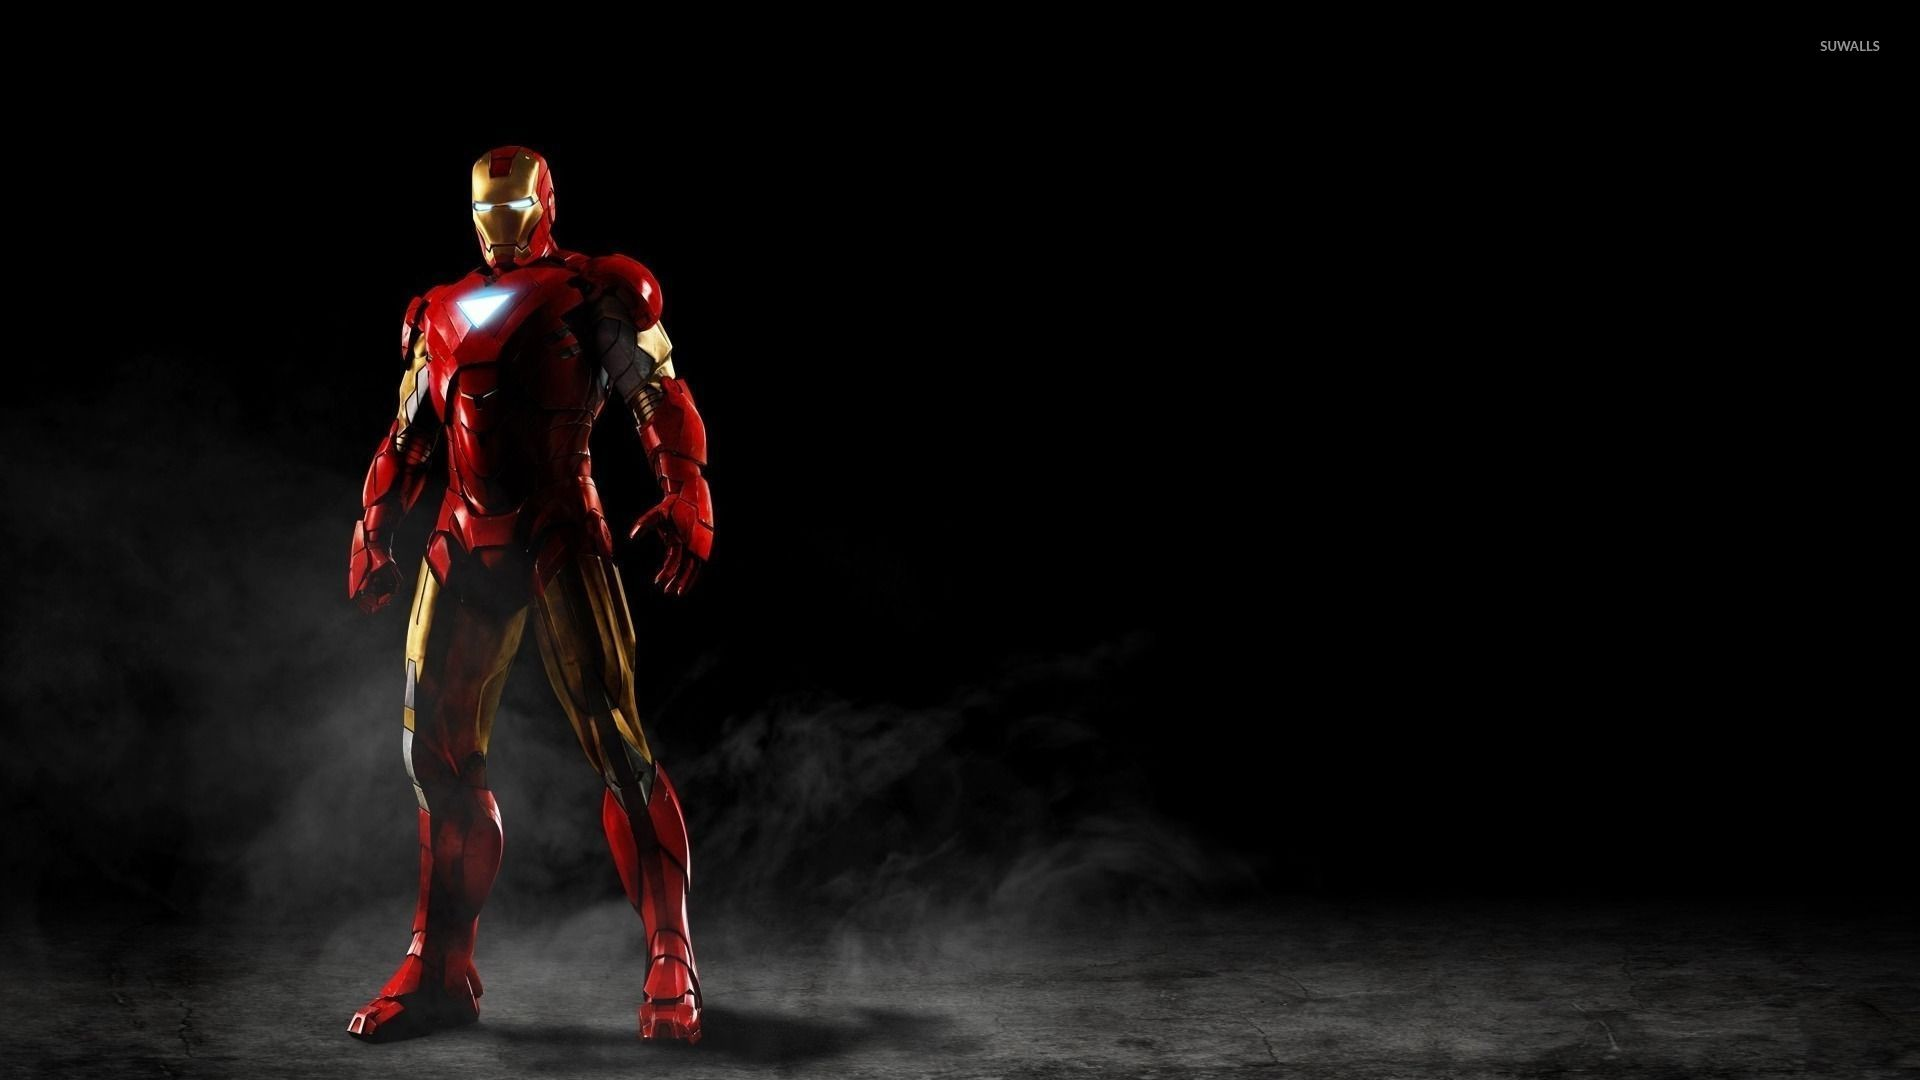 1920x1080 Iron Man standing in the smoke wallpaper  jpg